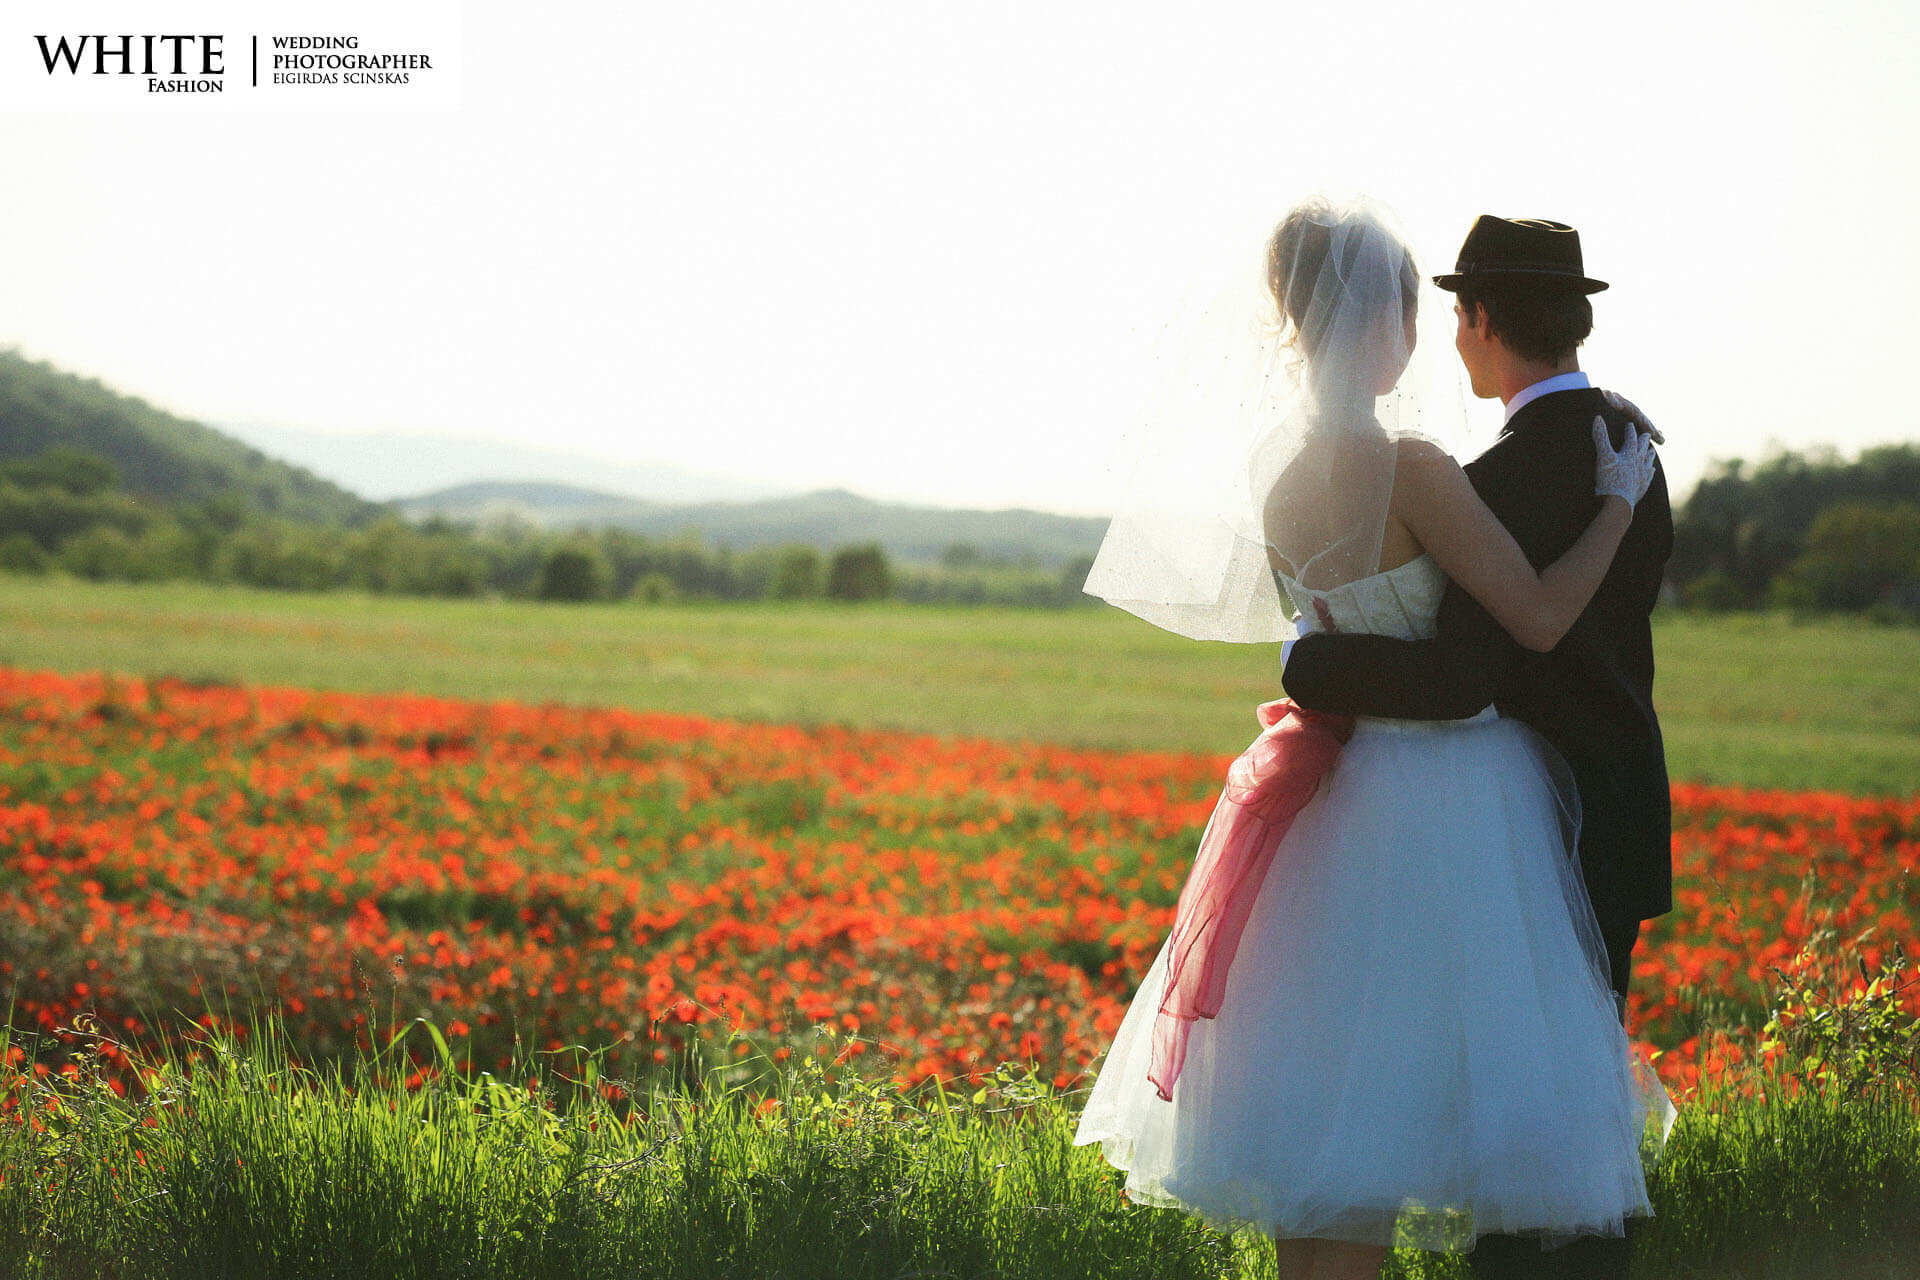 Wedding in Tuscany white fashion photographer russian citizens